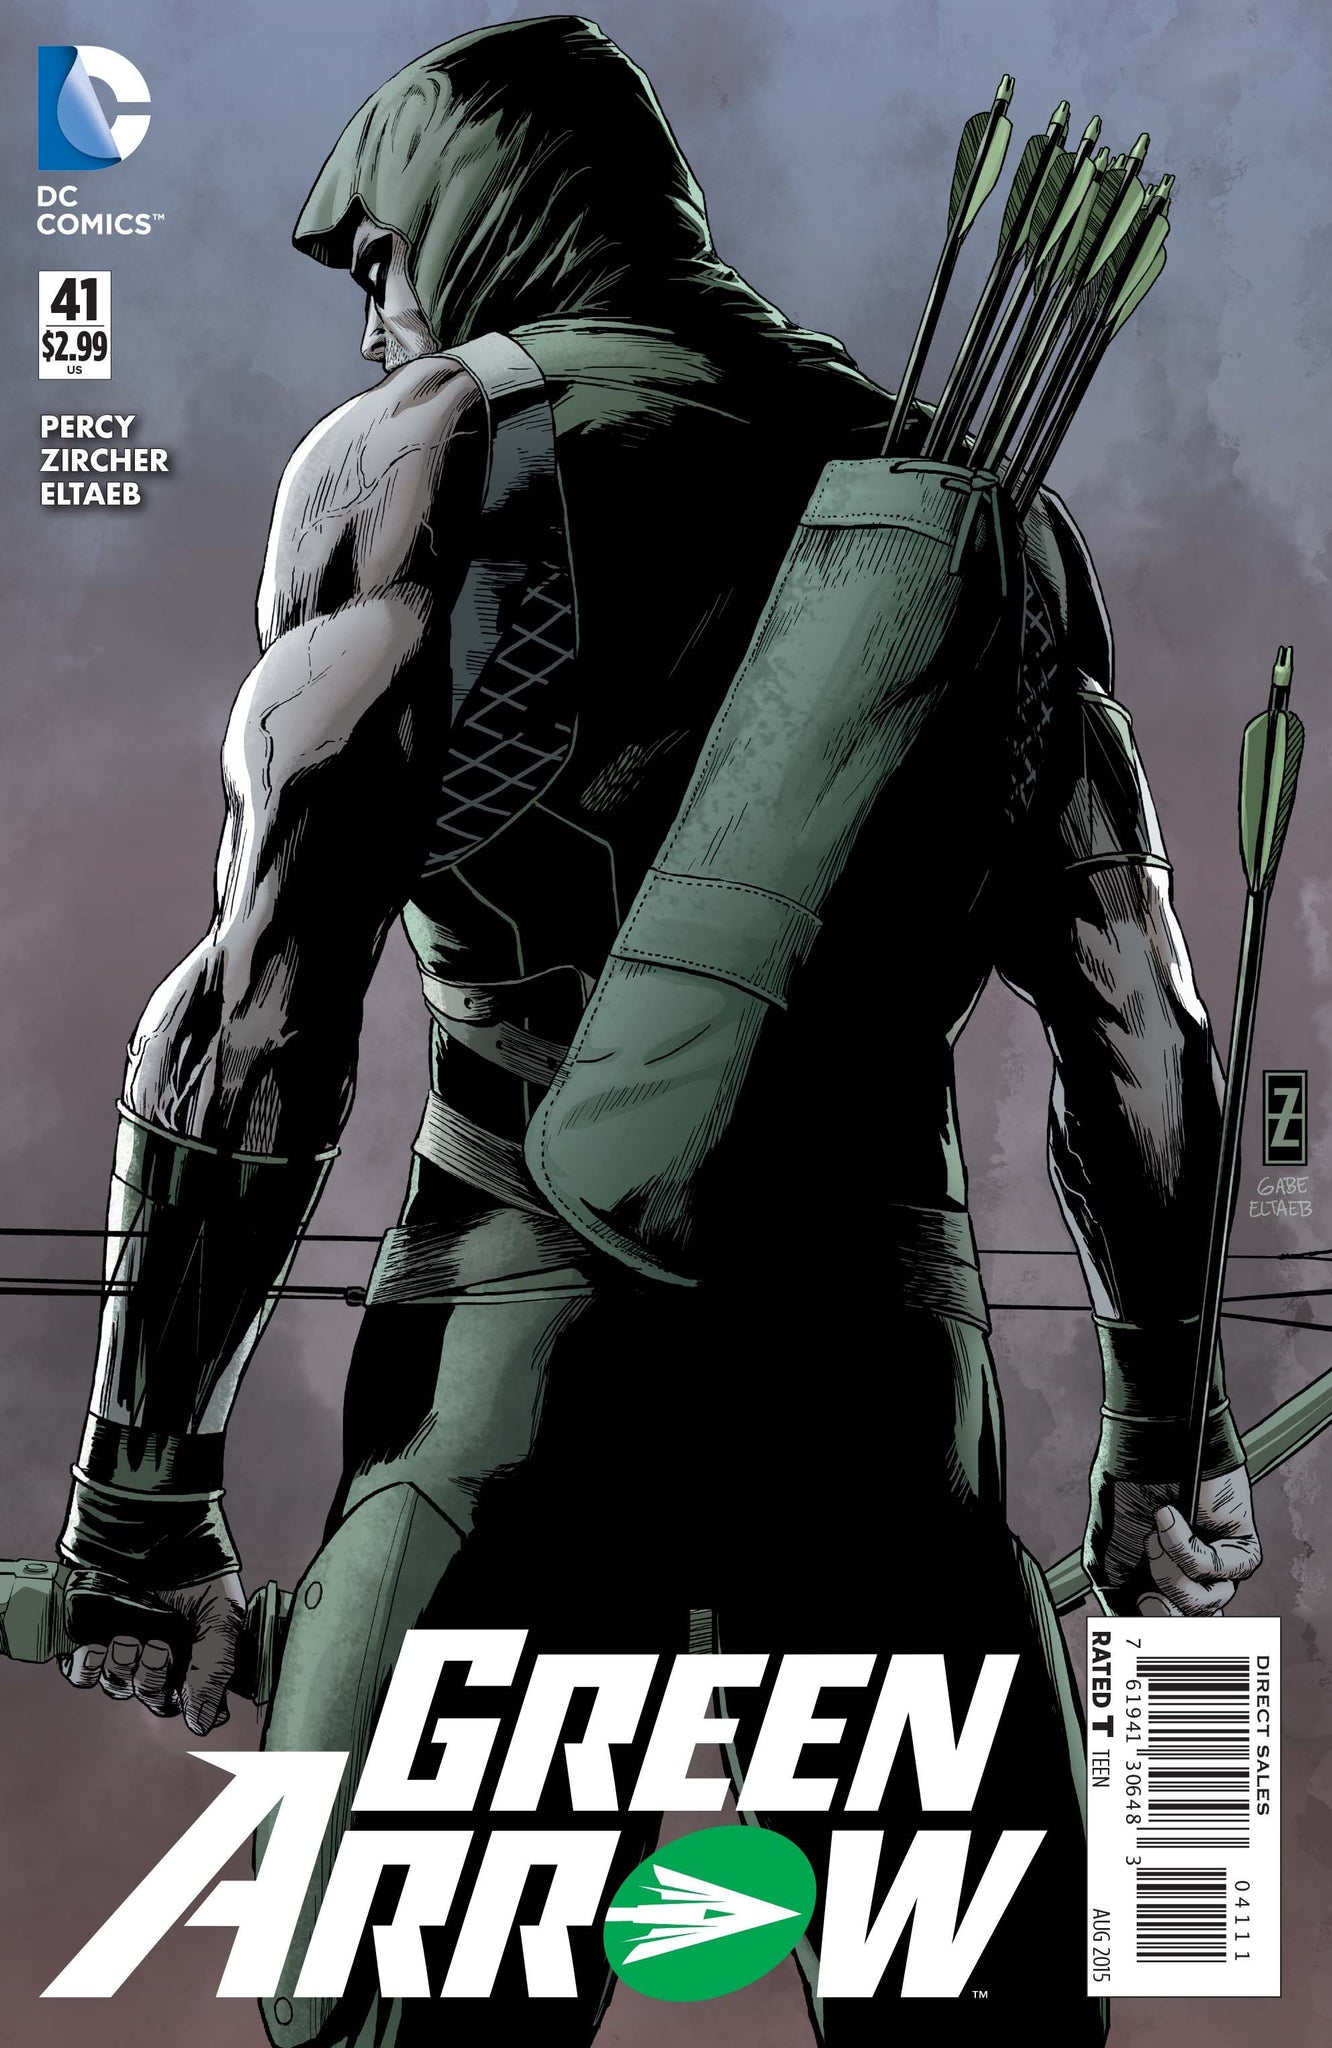 Green Arrow (The New 52) #41